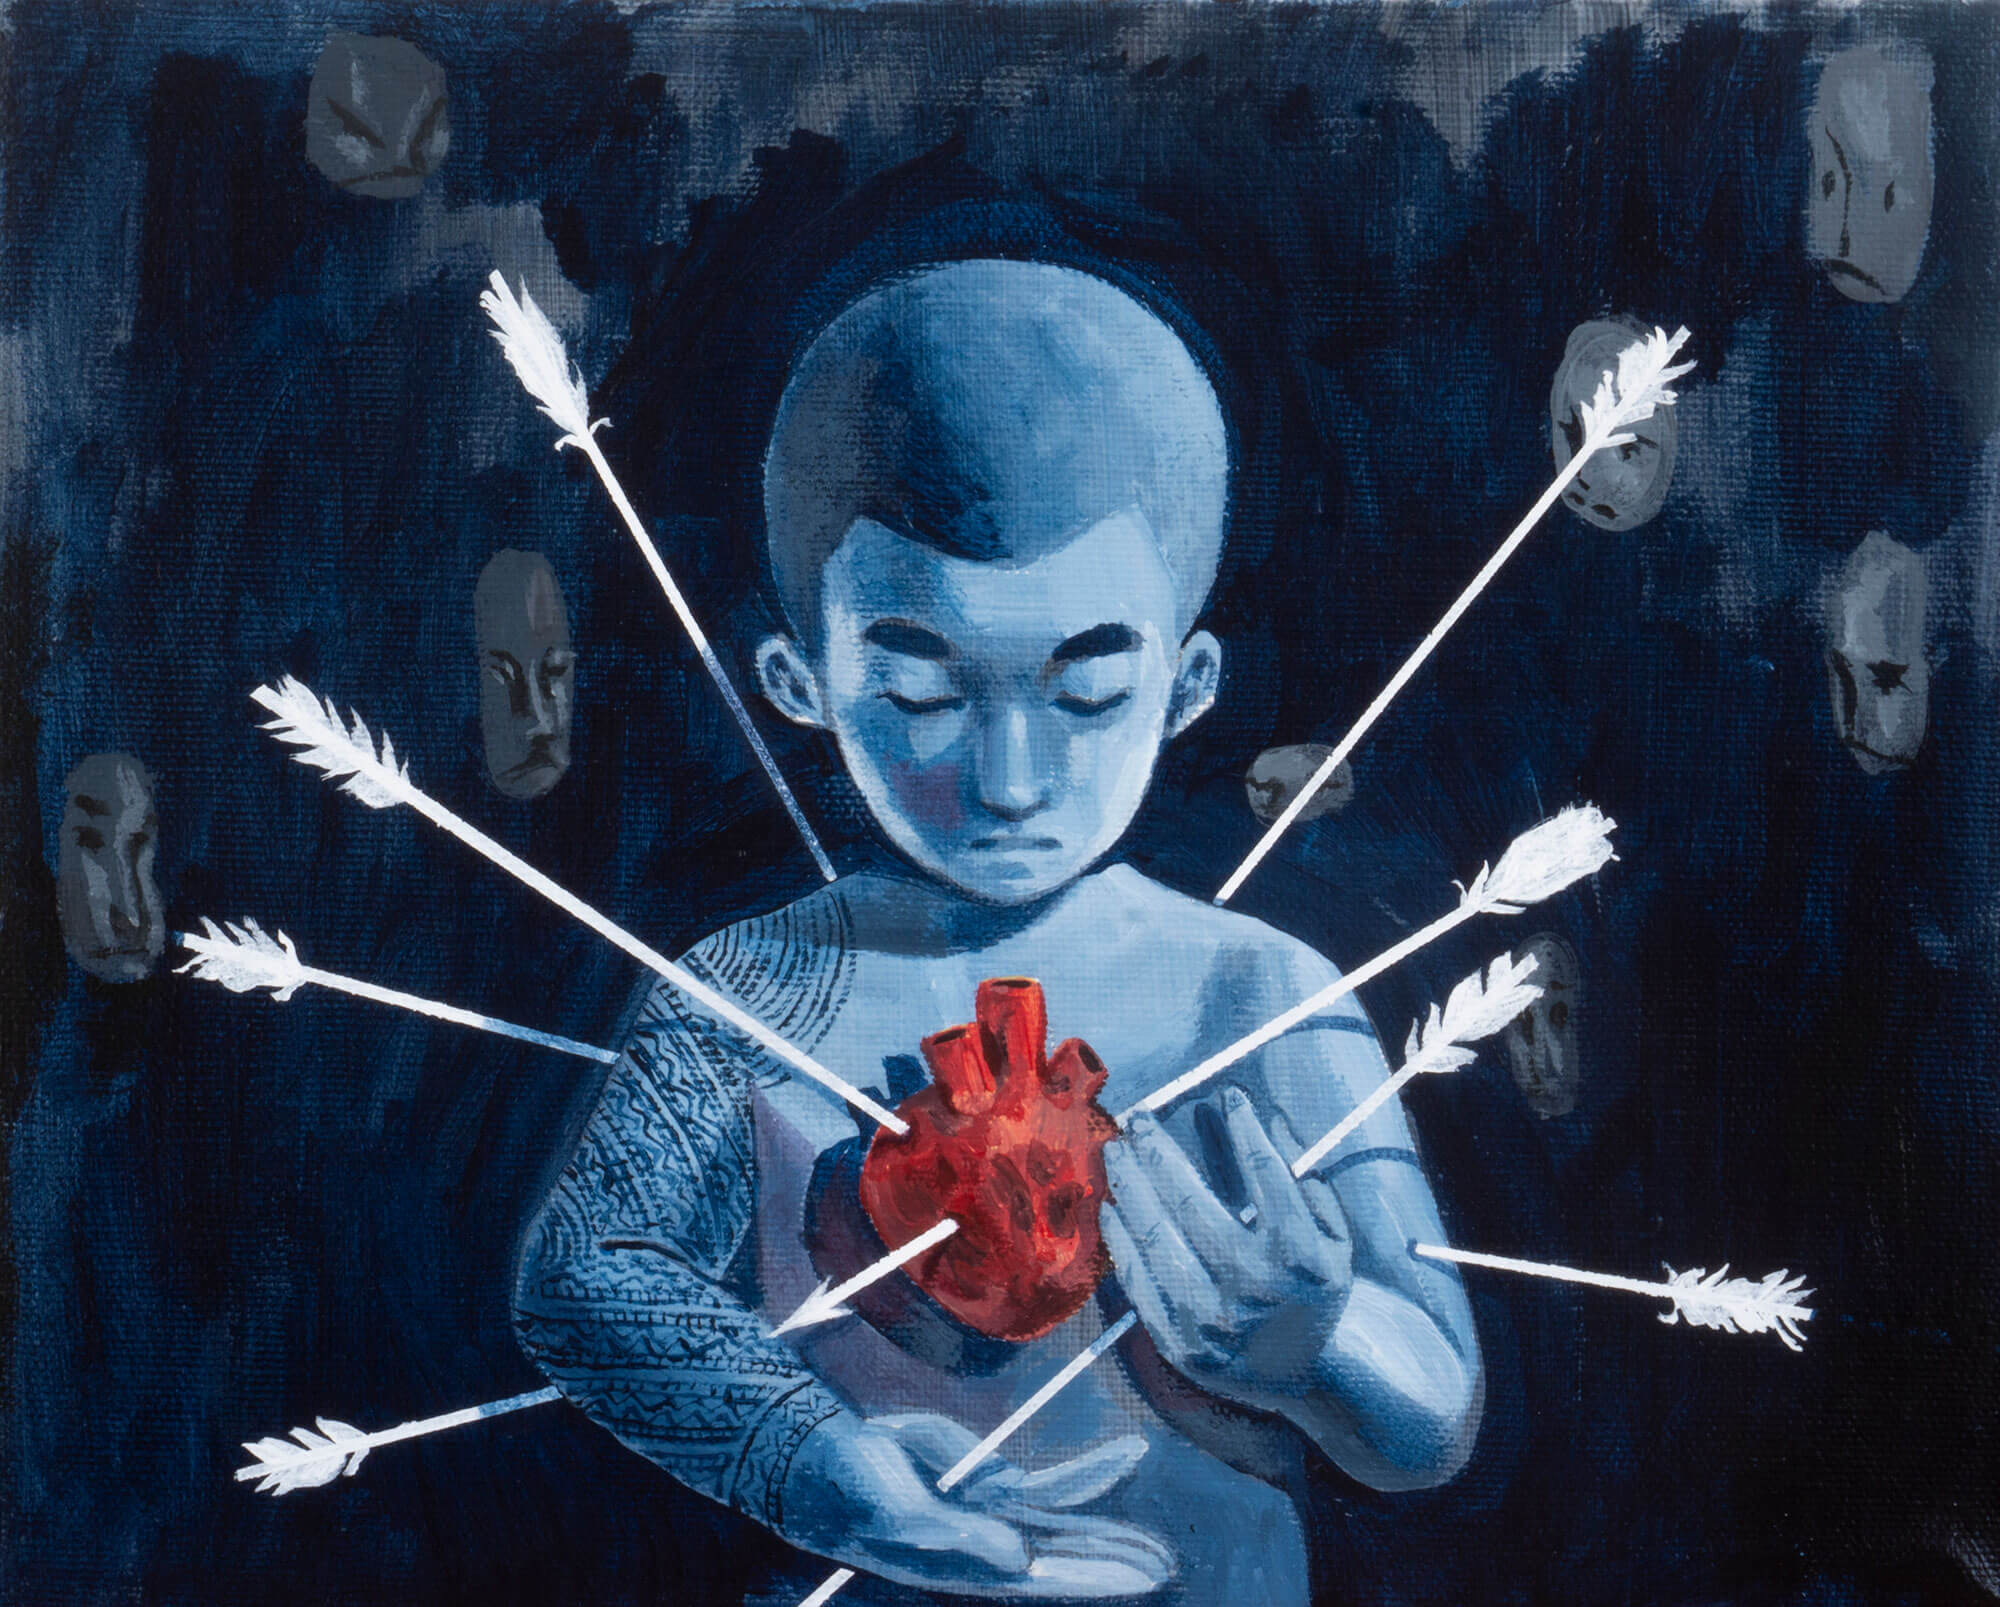 A painting of a ghost with a red heart outside of his body; arrows pierce his body and heart from all angles. In the background, misc. faces surround him.